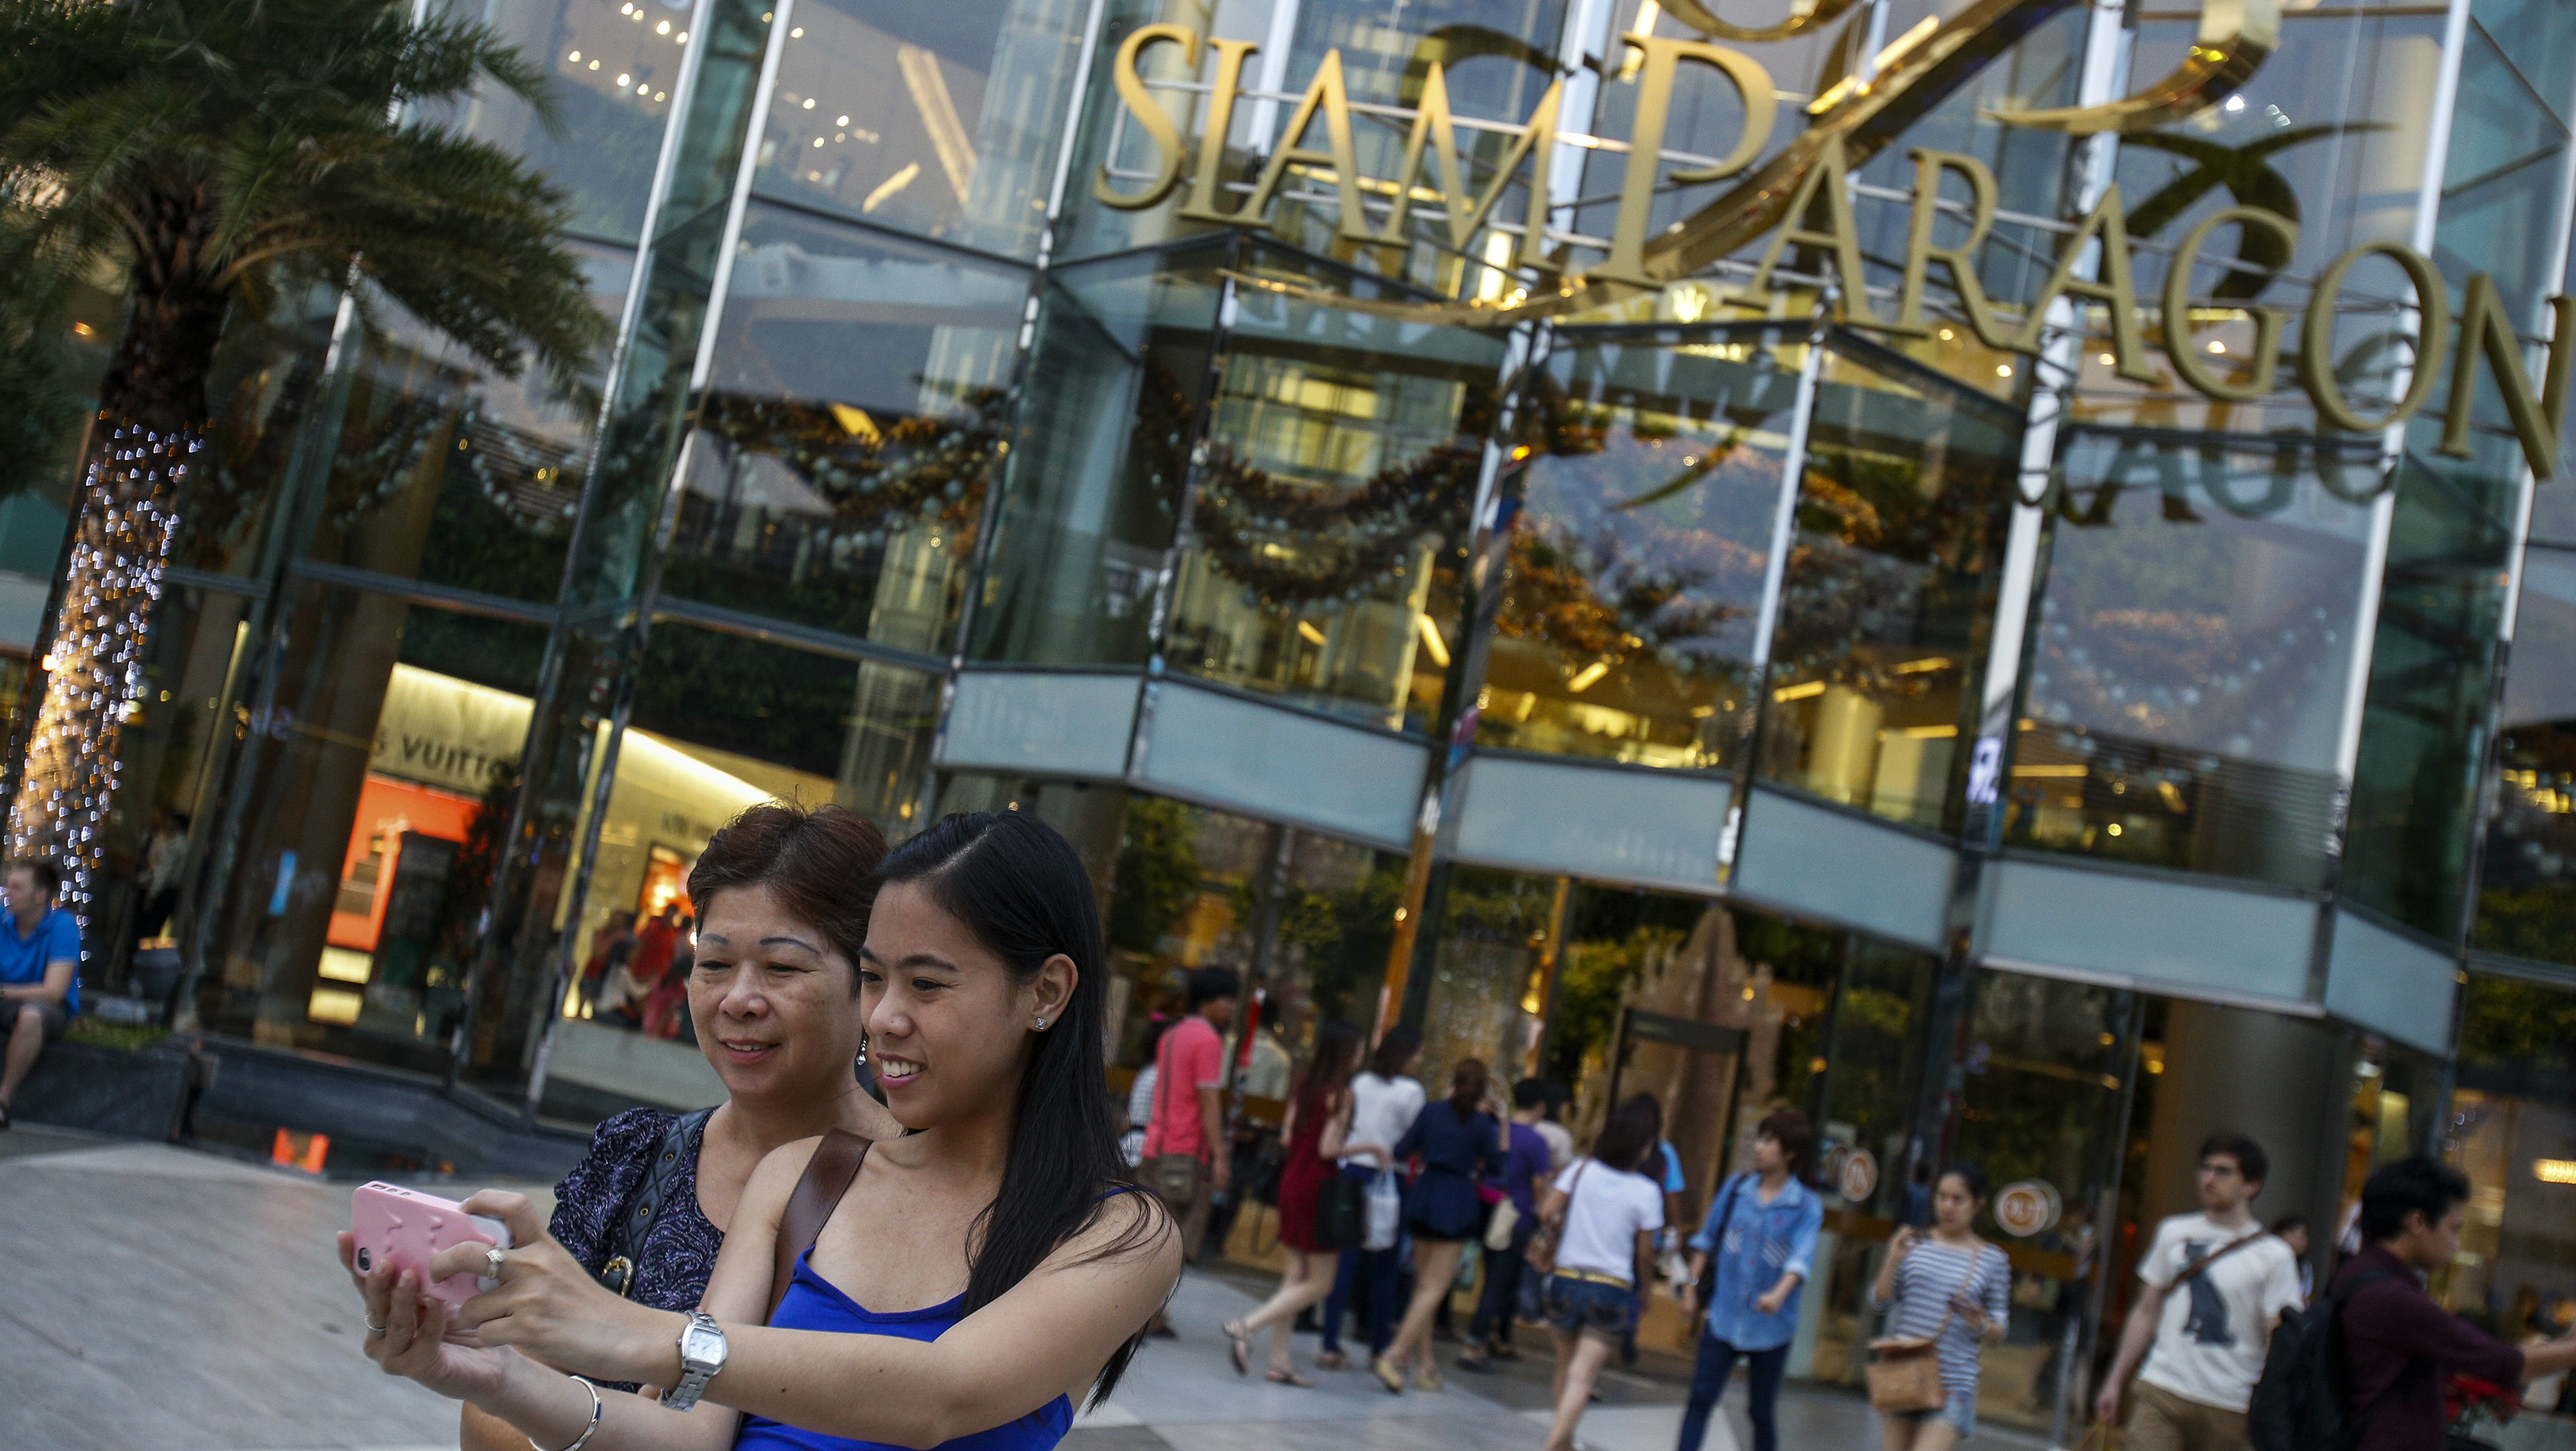 Tourists take a photo of themselves in front of Siam Paragon Department Store in central Bangkok December 16, 2013. Bangkok's Siam Paragon shopping mall is the most popular location among Instagram users, and Bangkok the second most popular city this year, the network's blog announced. REUTERS/Athit Perawongmetha